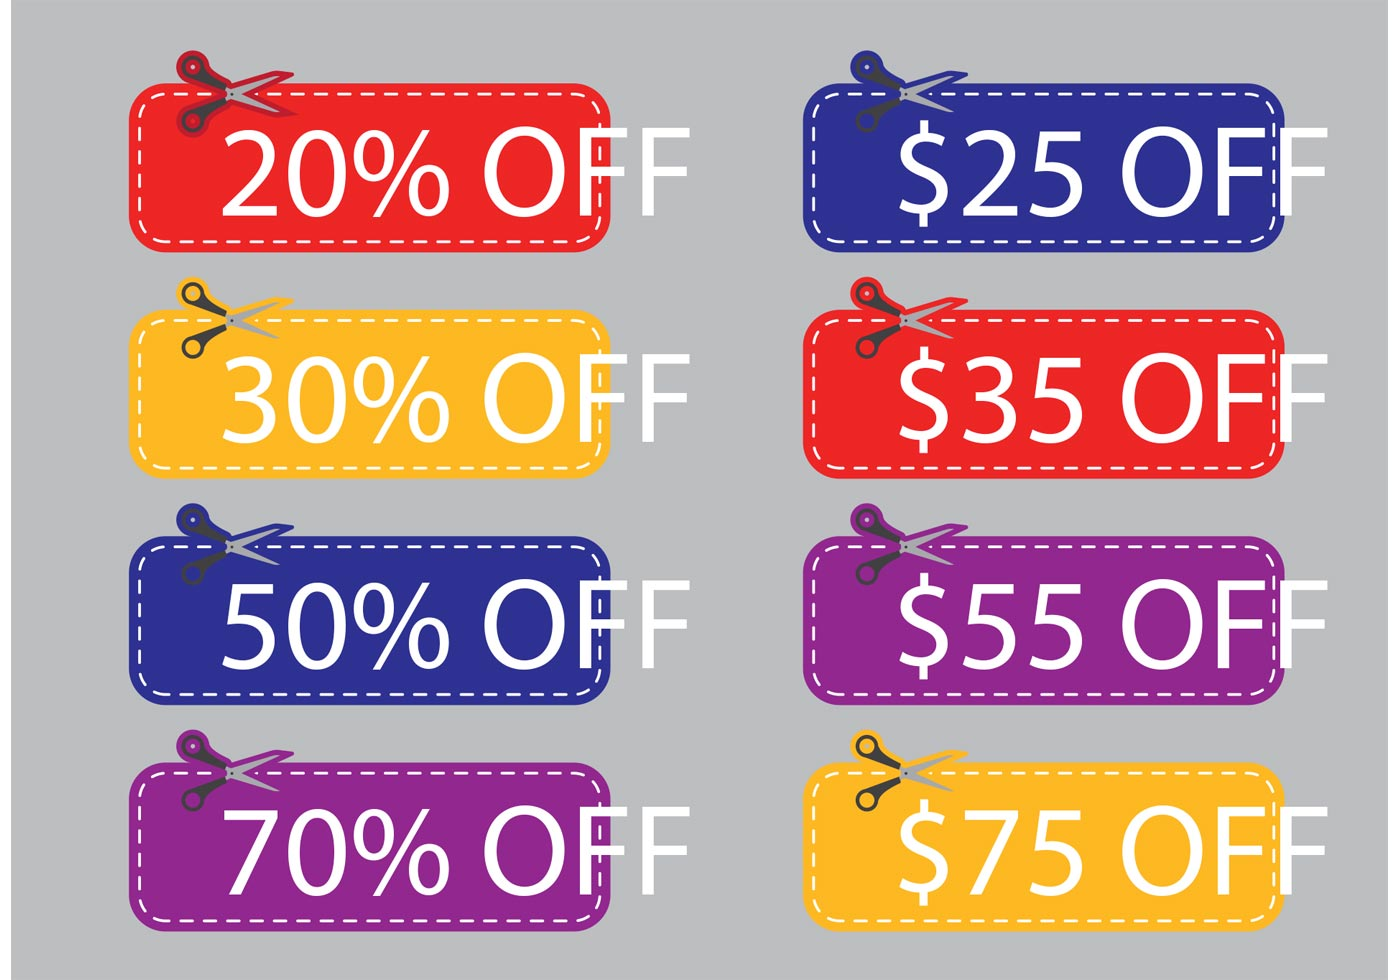 Svg cuts discount coupon